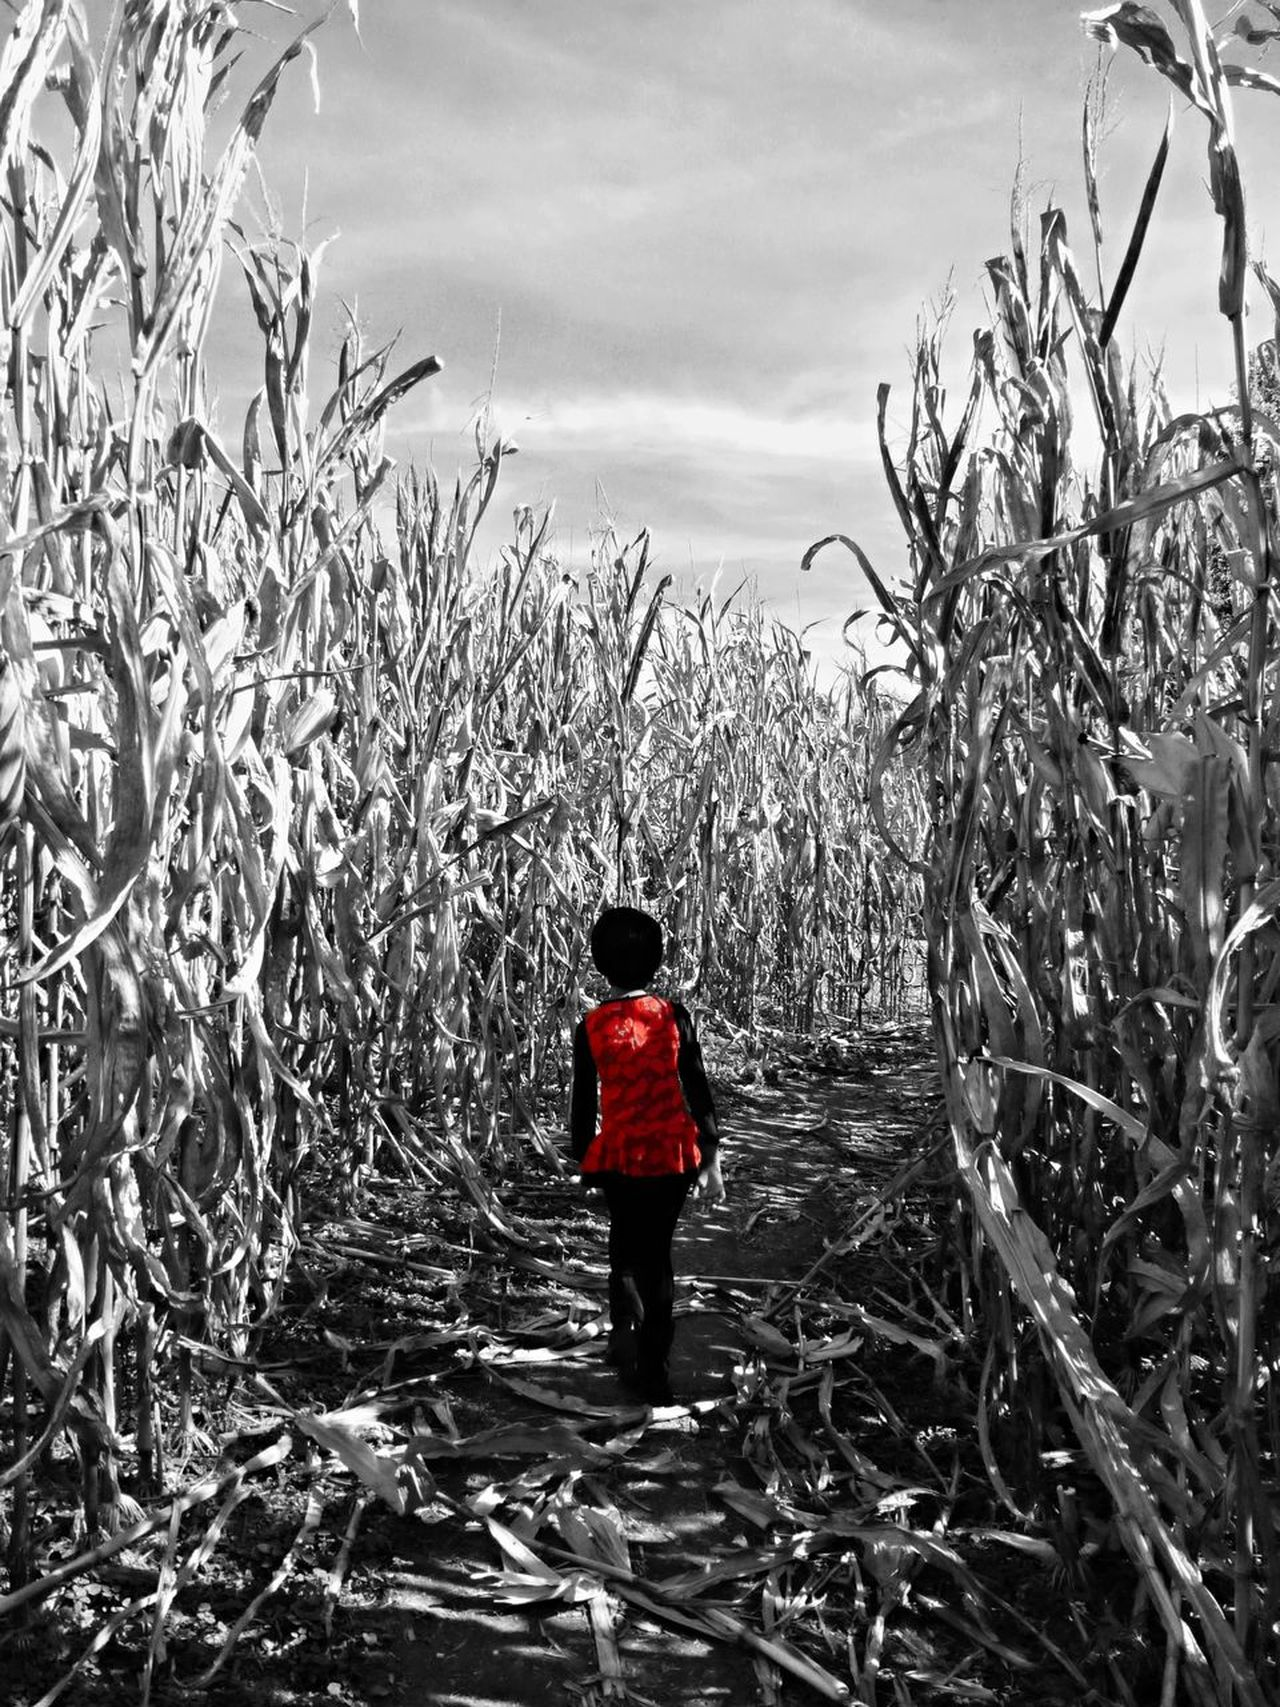 Beauty In Nature Corn Cornfield Day Exploration EyeEm New Here Full Length Live For The Story Mystery Nature One Person Outdoor Photography Outdoors People Real People Rear View Red Selective Color Sky Standing Streetphoto_bw Tree Walking